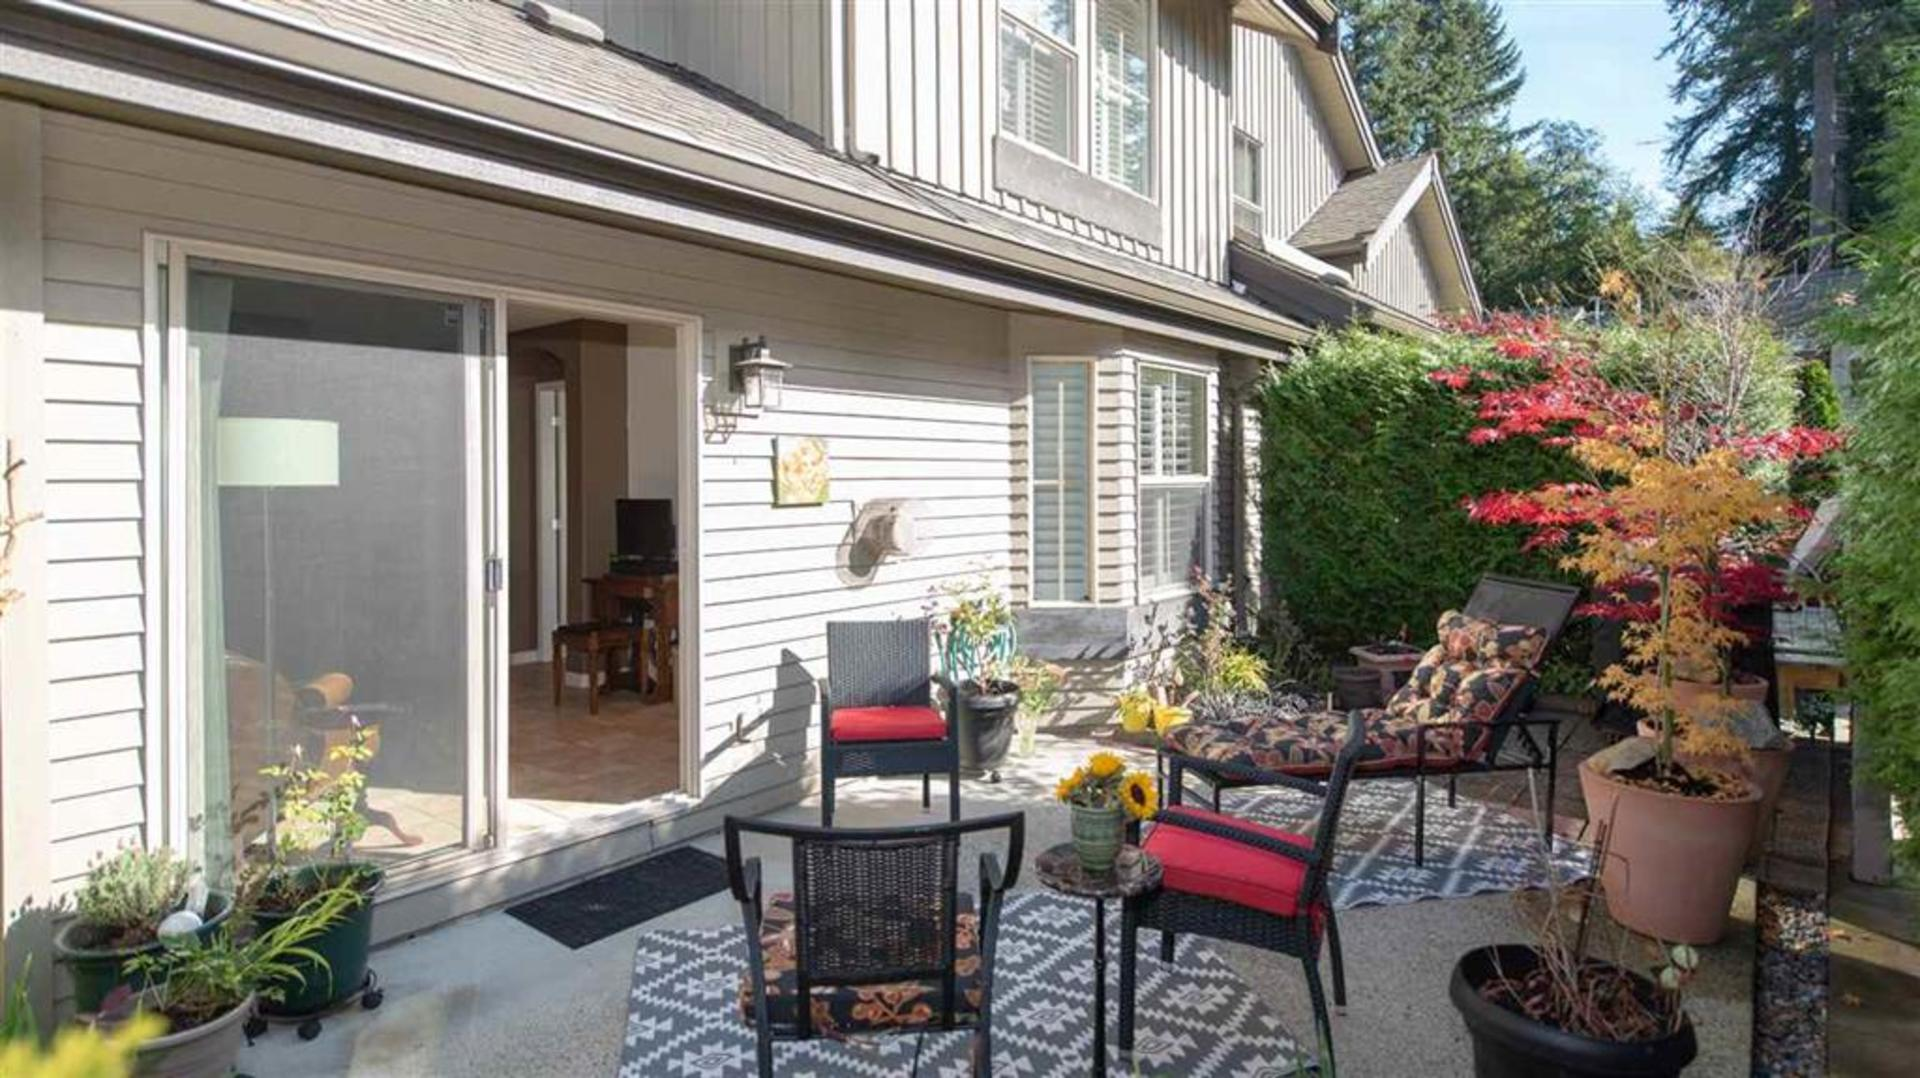 262337785-16 at 57 - 1550 Larkhall Crescent, Northlands, North Vancouver